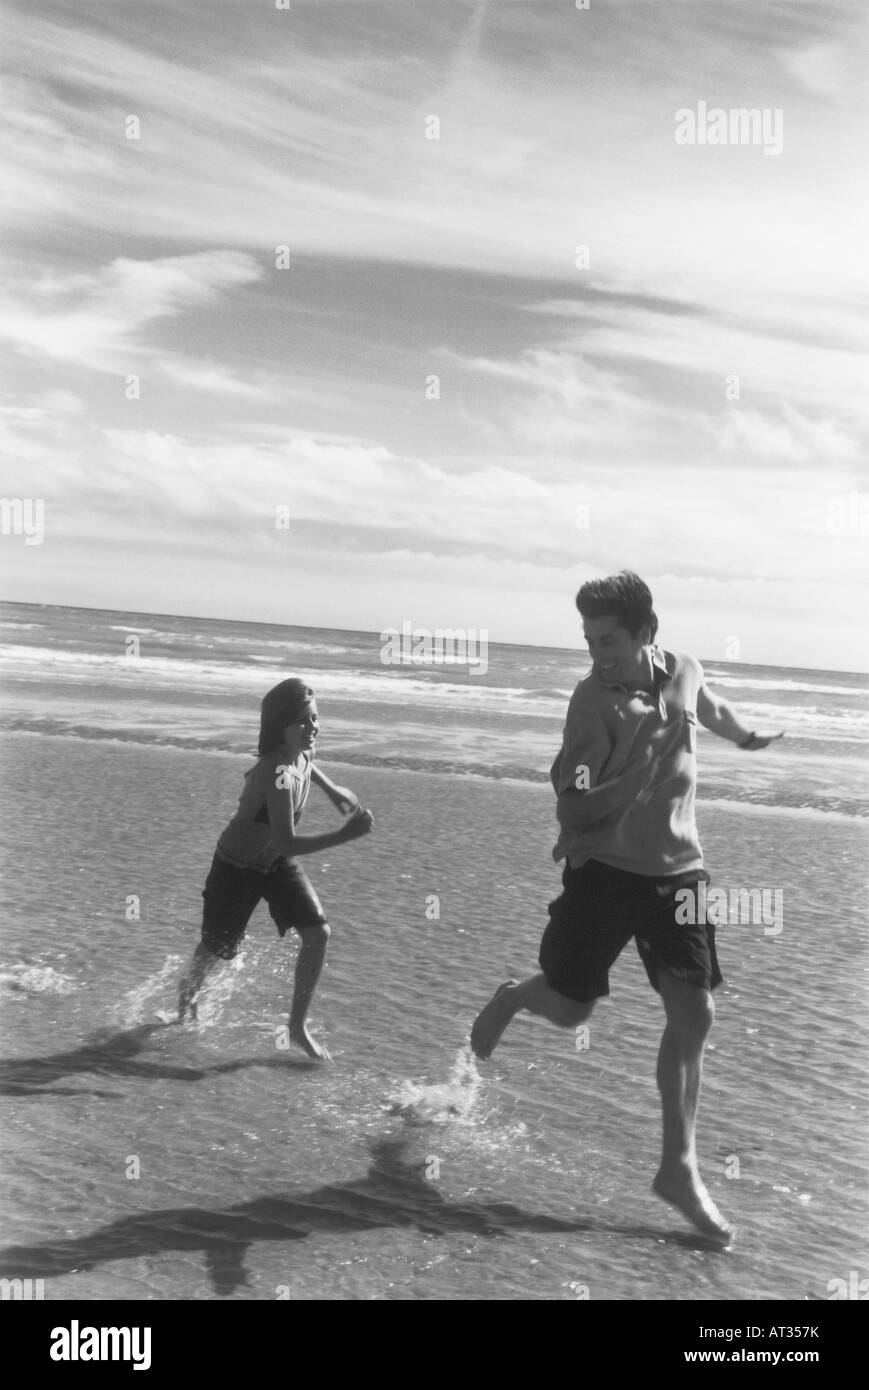 A father being chased along the beach by his daughter Stock Photo